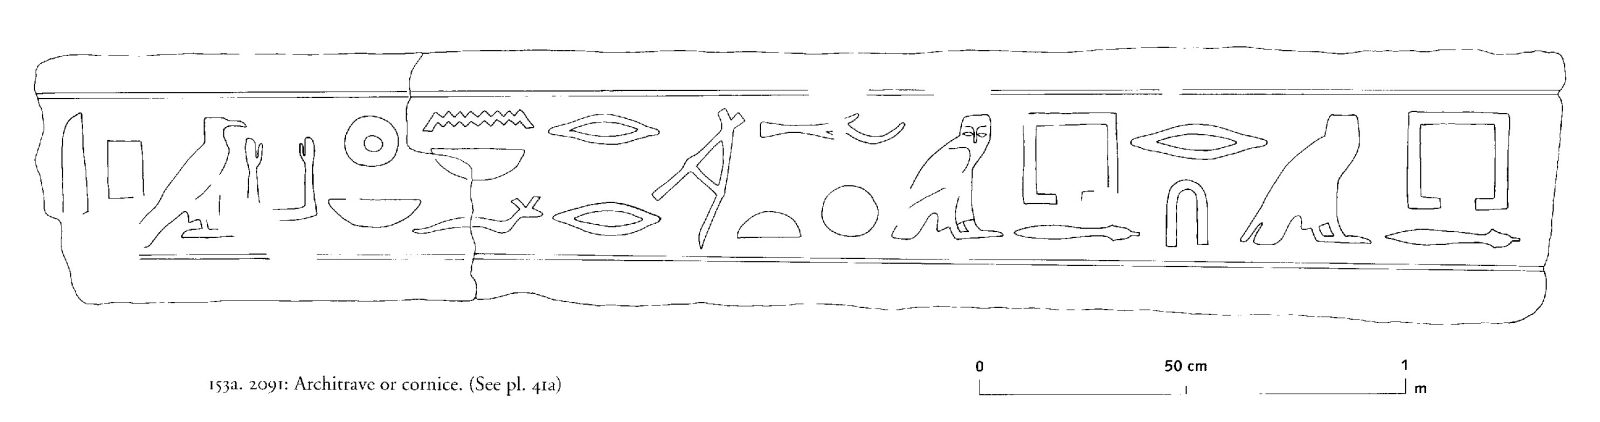 Drawings: G 2091: relief from architrave or cornice